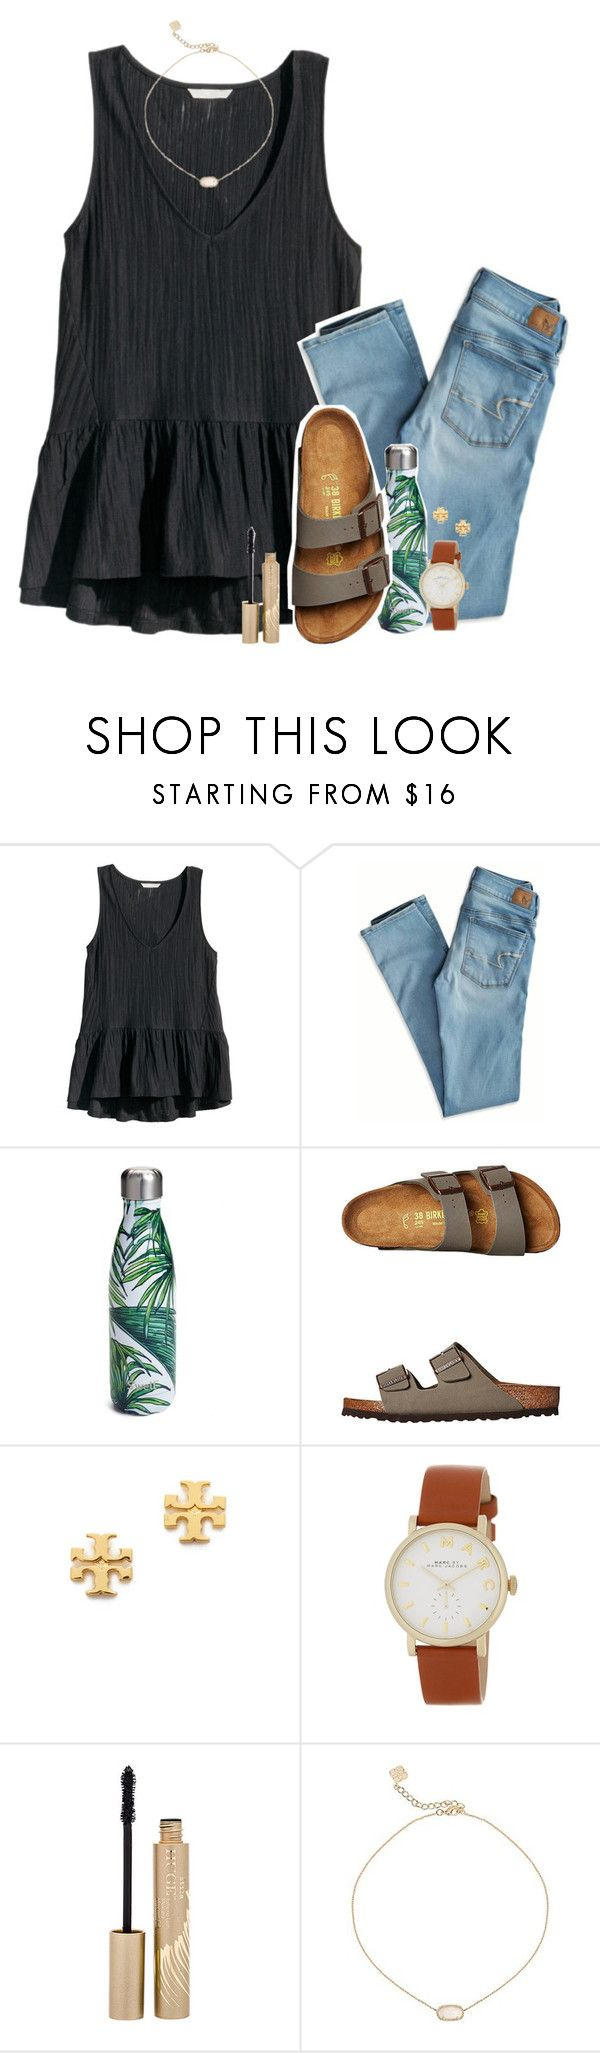 """let's dance~"" by the-preps ❤ liked on Polyvore featuring H&M, American Eagle Outfitters, S'well, Birkenstock, Tory Burch, Marc Jacobs, Stila and Kendra Scott"